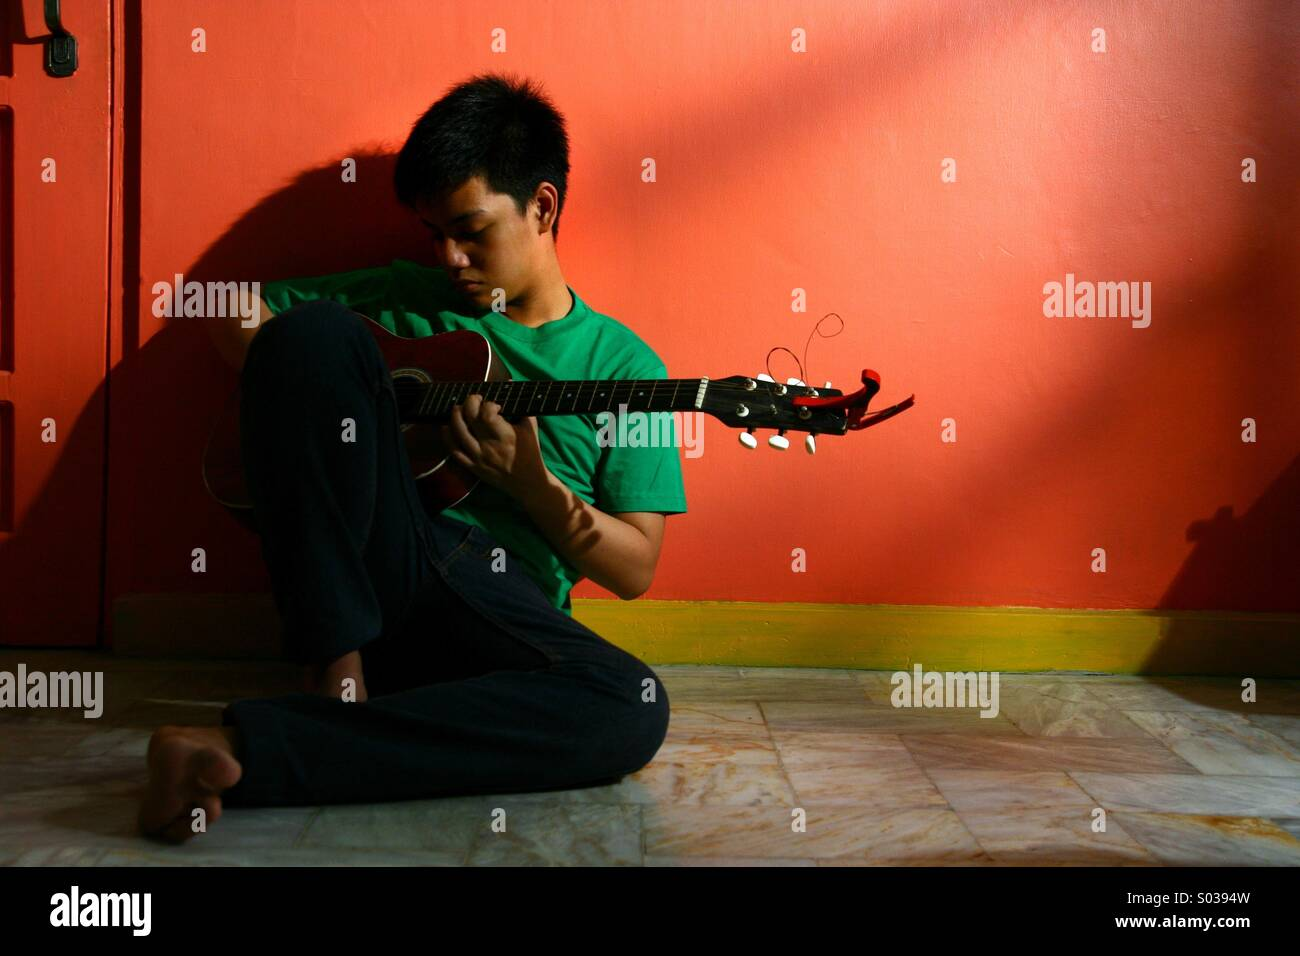 Young asian teen playing guitar in an empty living room - Stock Image